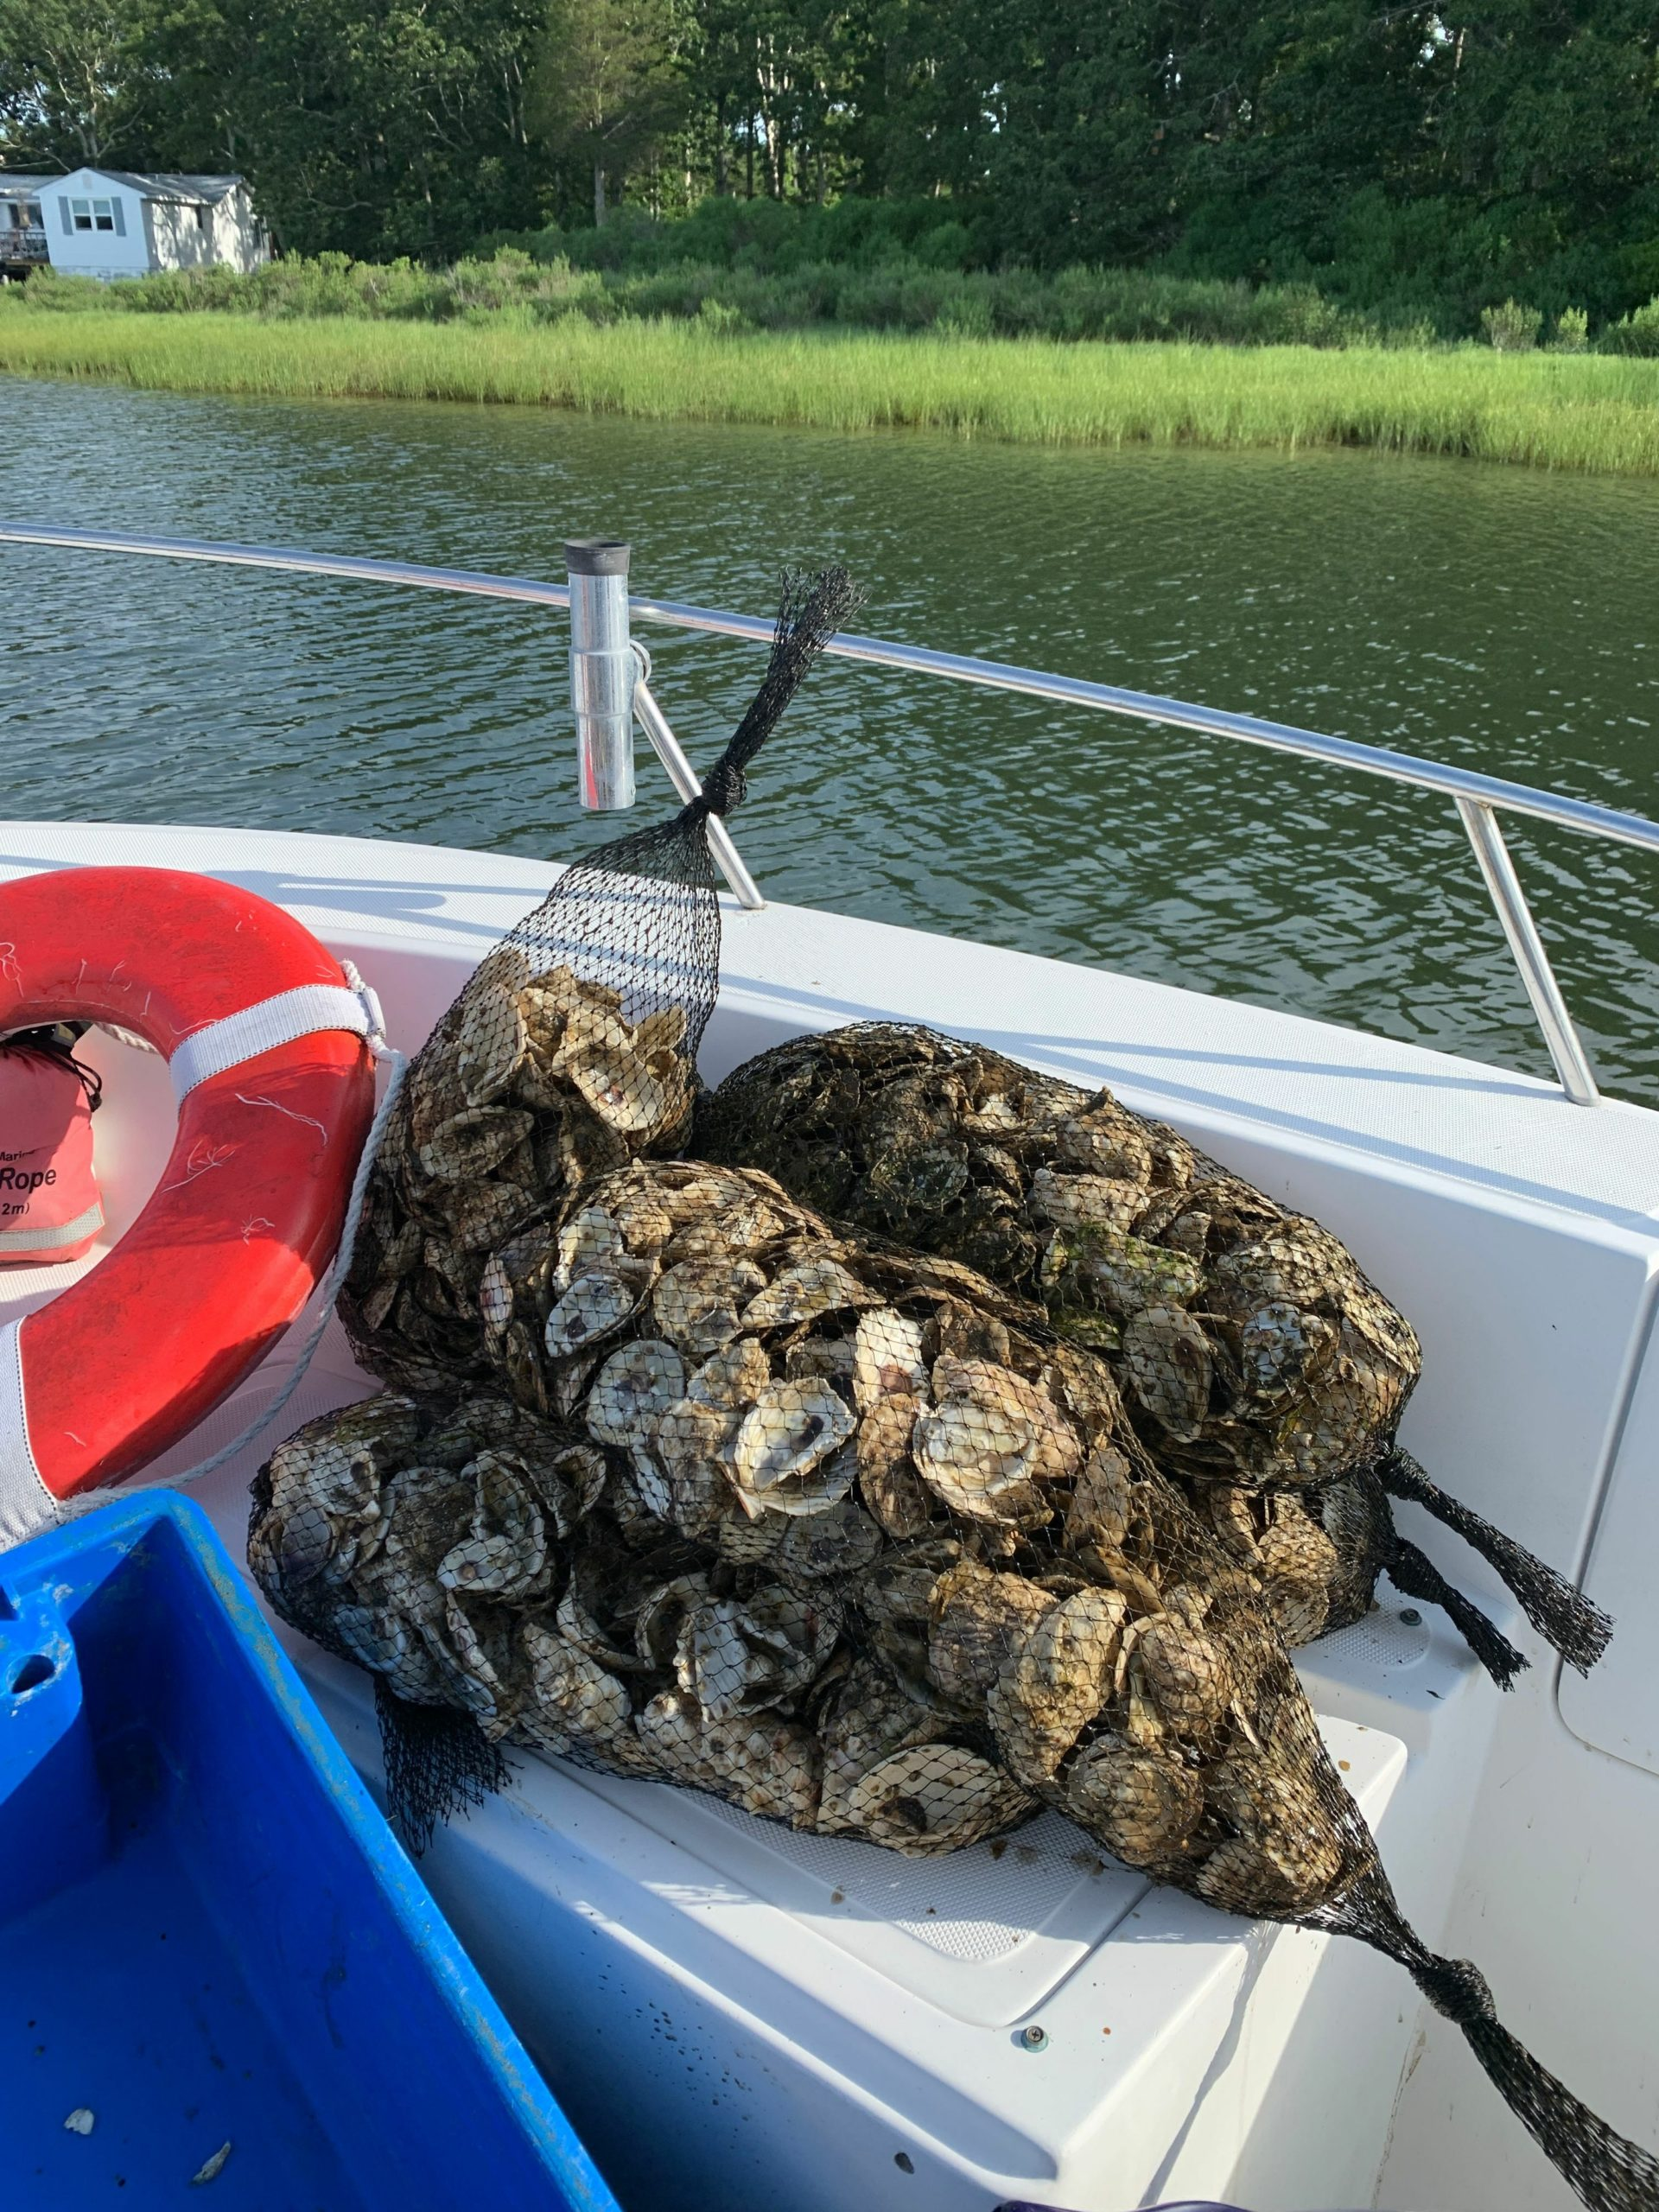 The baby oysters, known as spat, were grown on the shells of dead adult oysters to give the